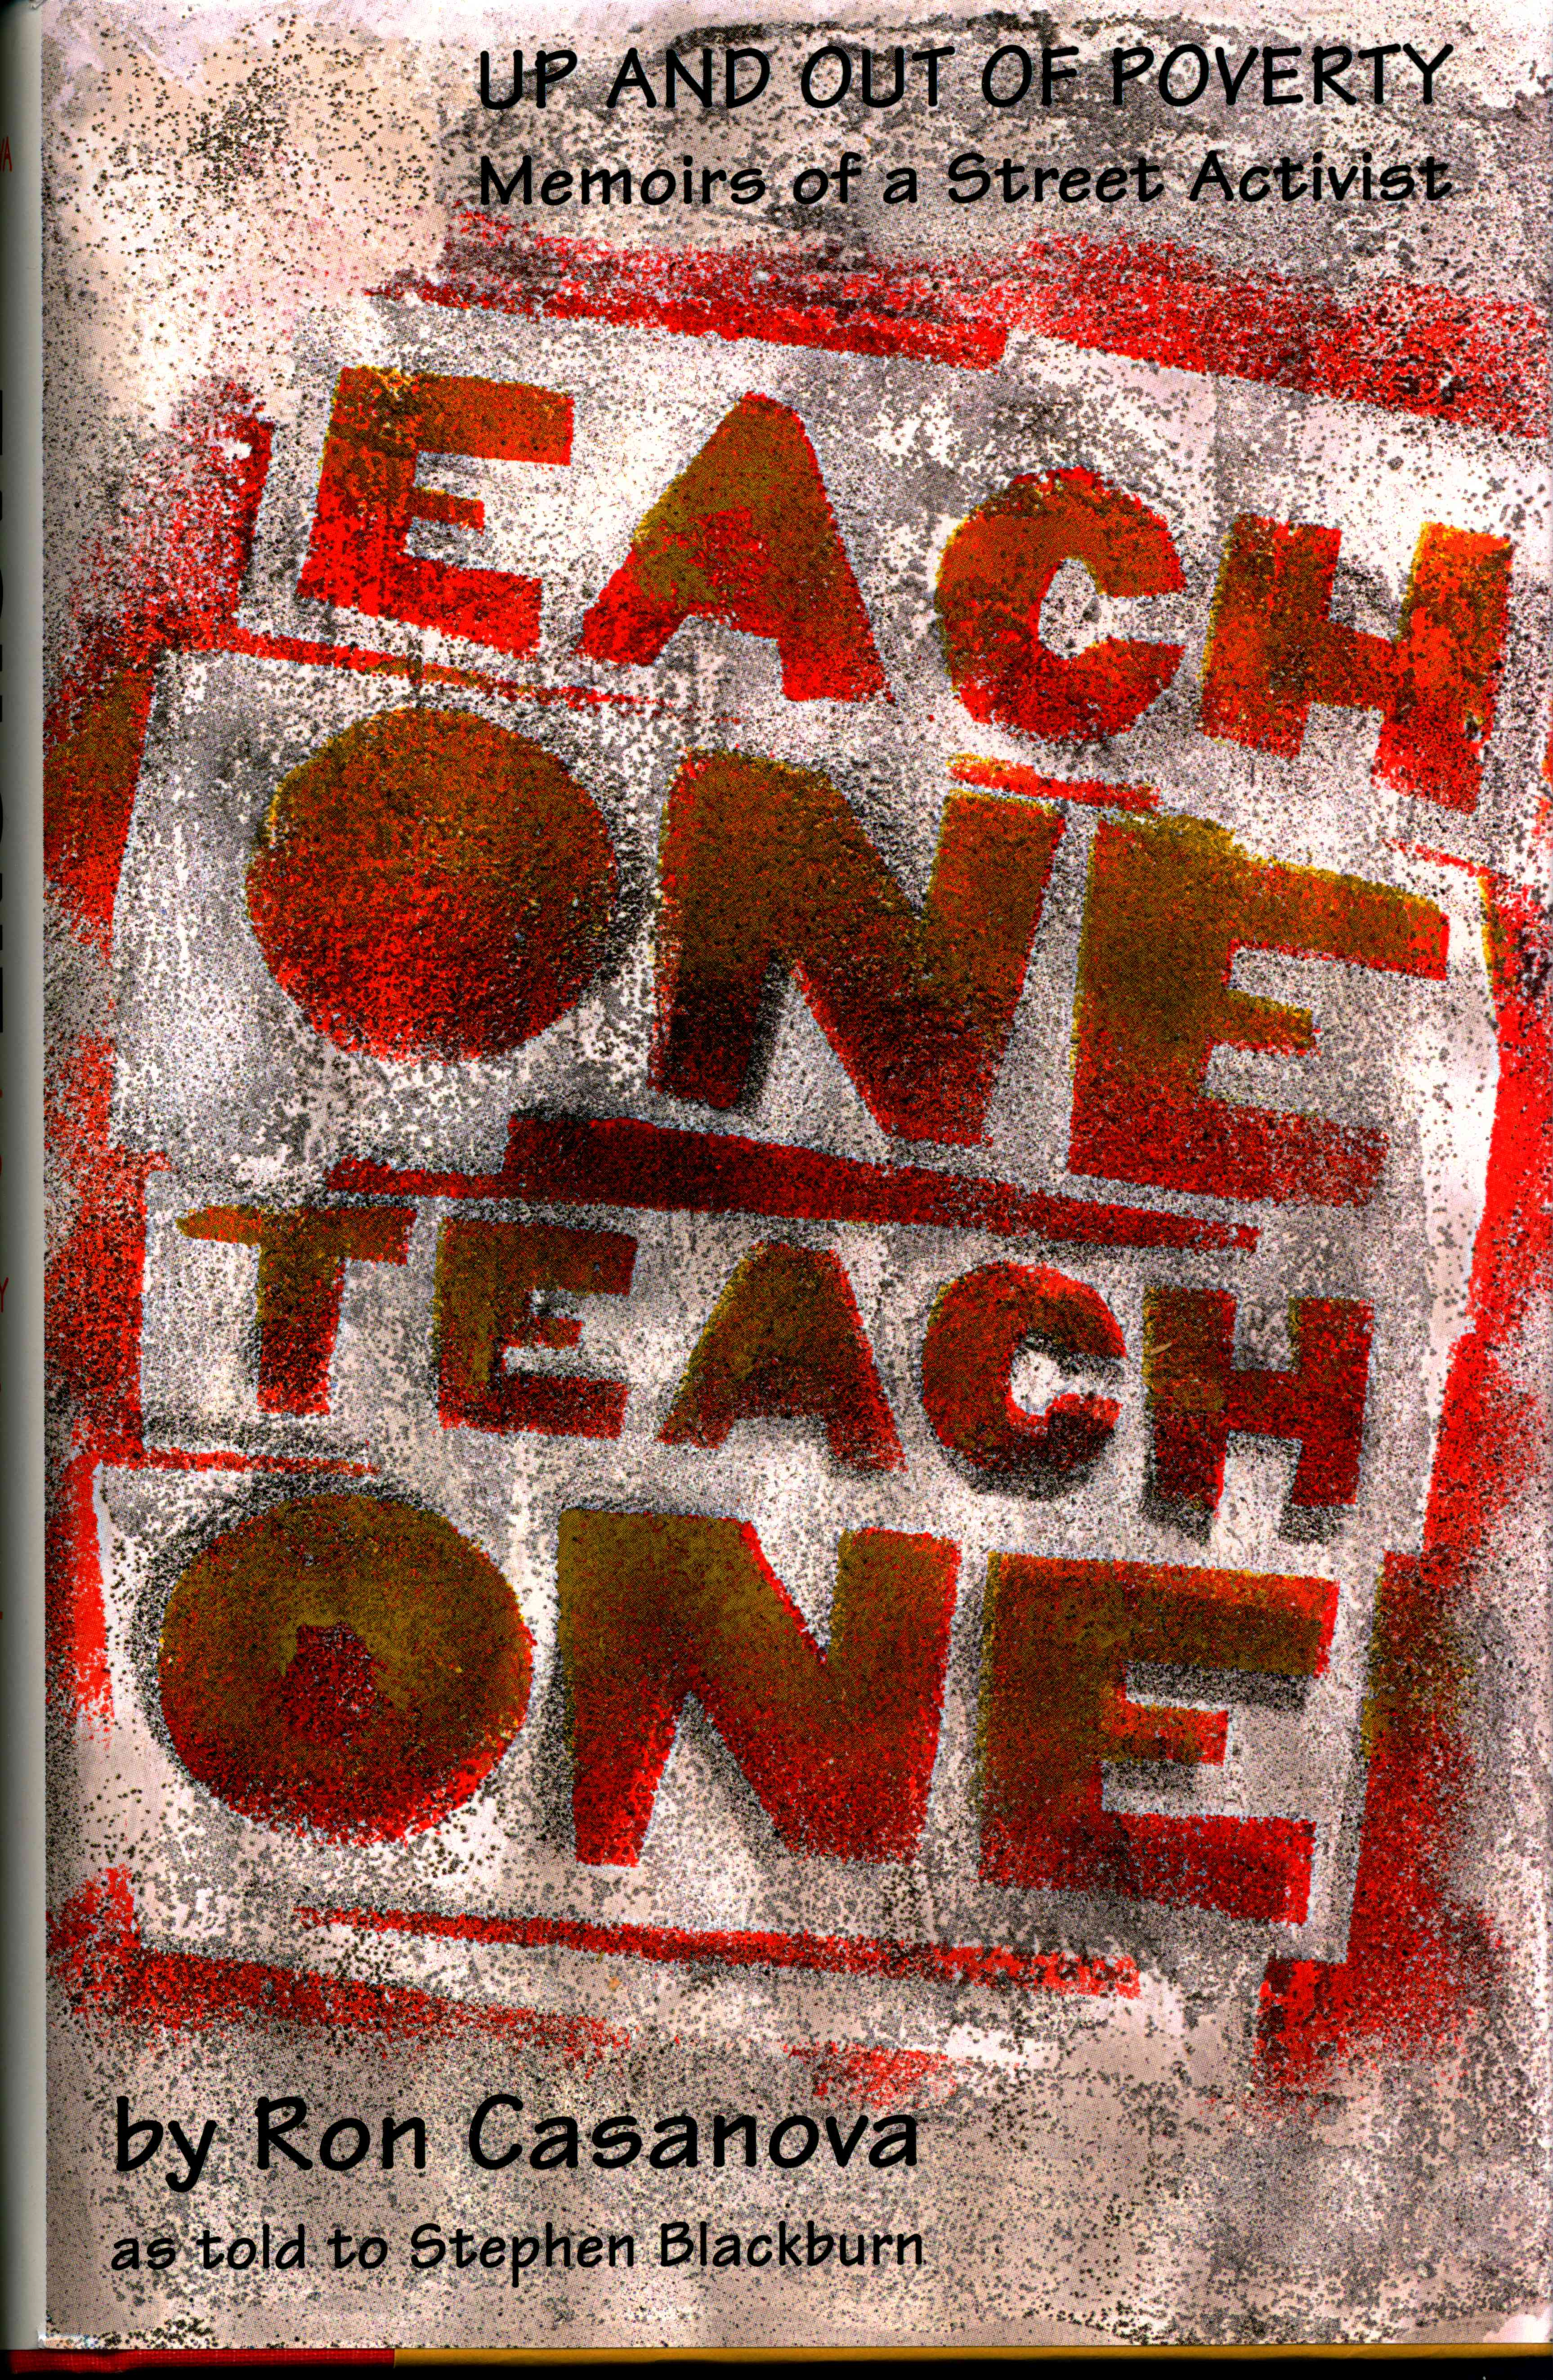 kairos center publications and researcheach one teach one by ron casanova   steven blackburn   northwestern university press